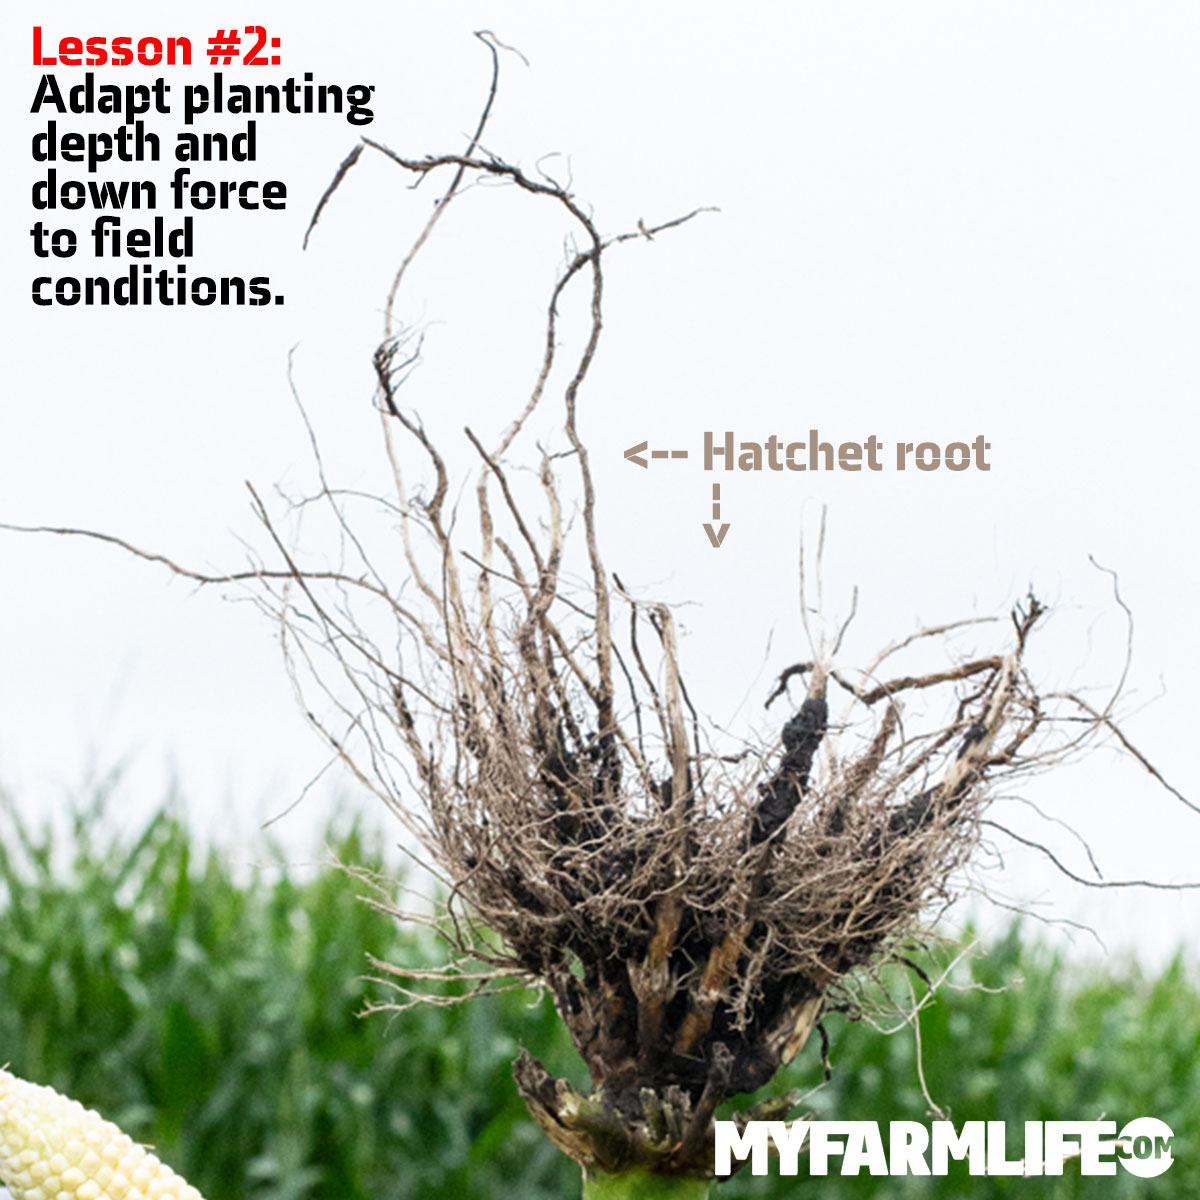 Lesson #2: Adapt planting depth and downforce to field conditions.